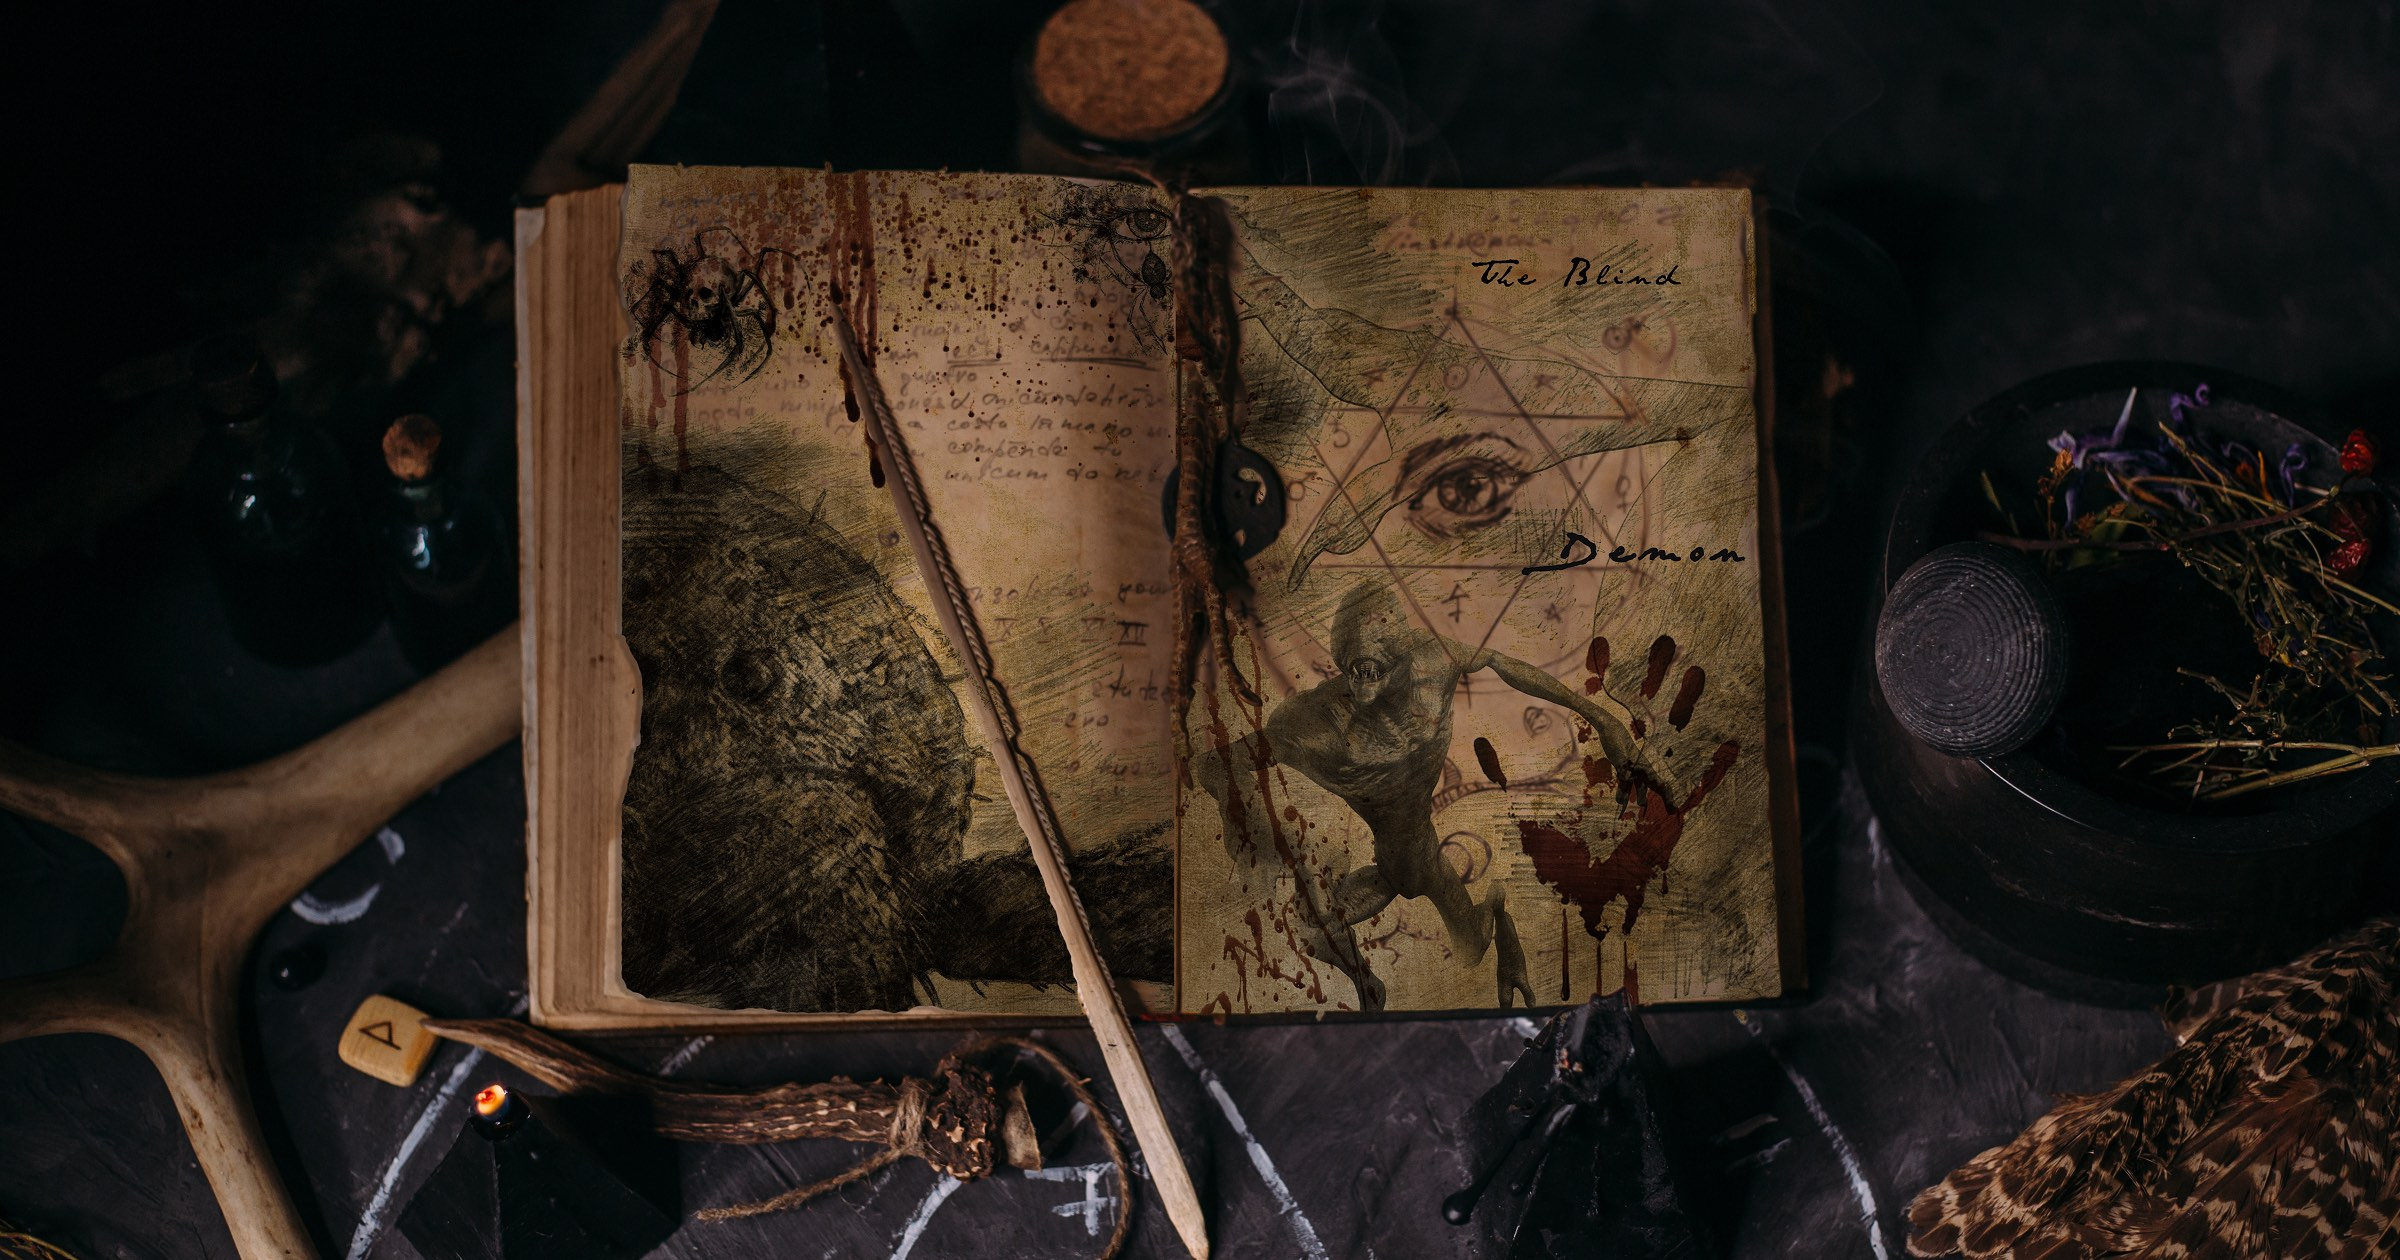 Summon the Seven Princes of Hell With 'The Book of Asmodeus'